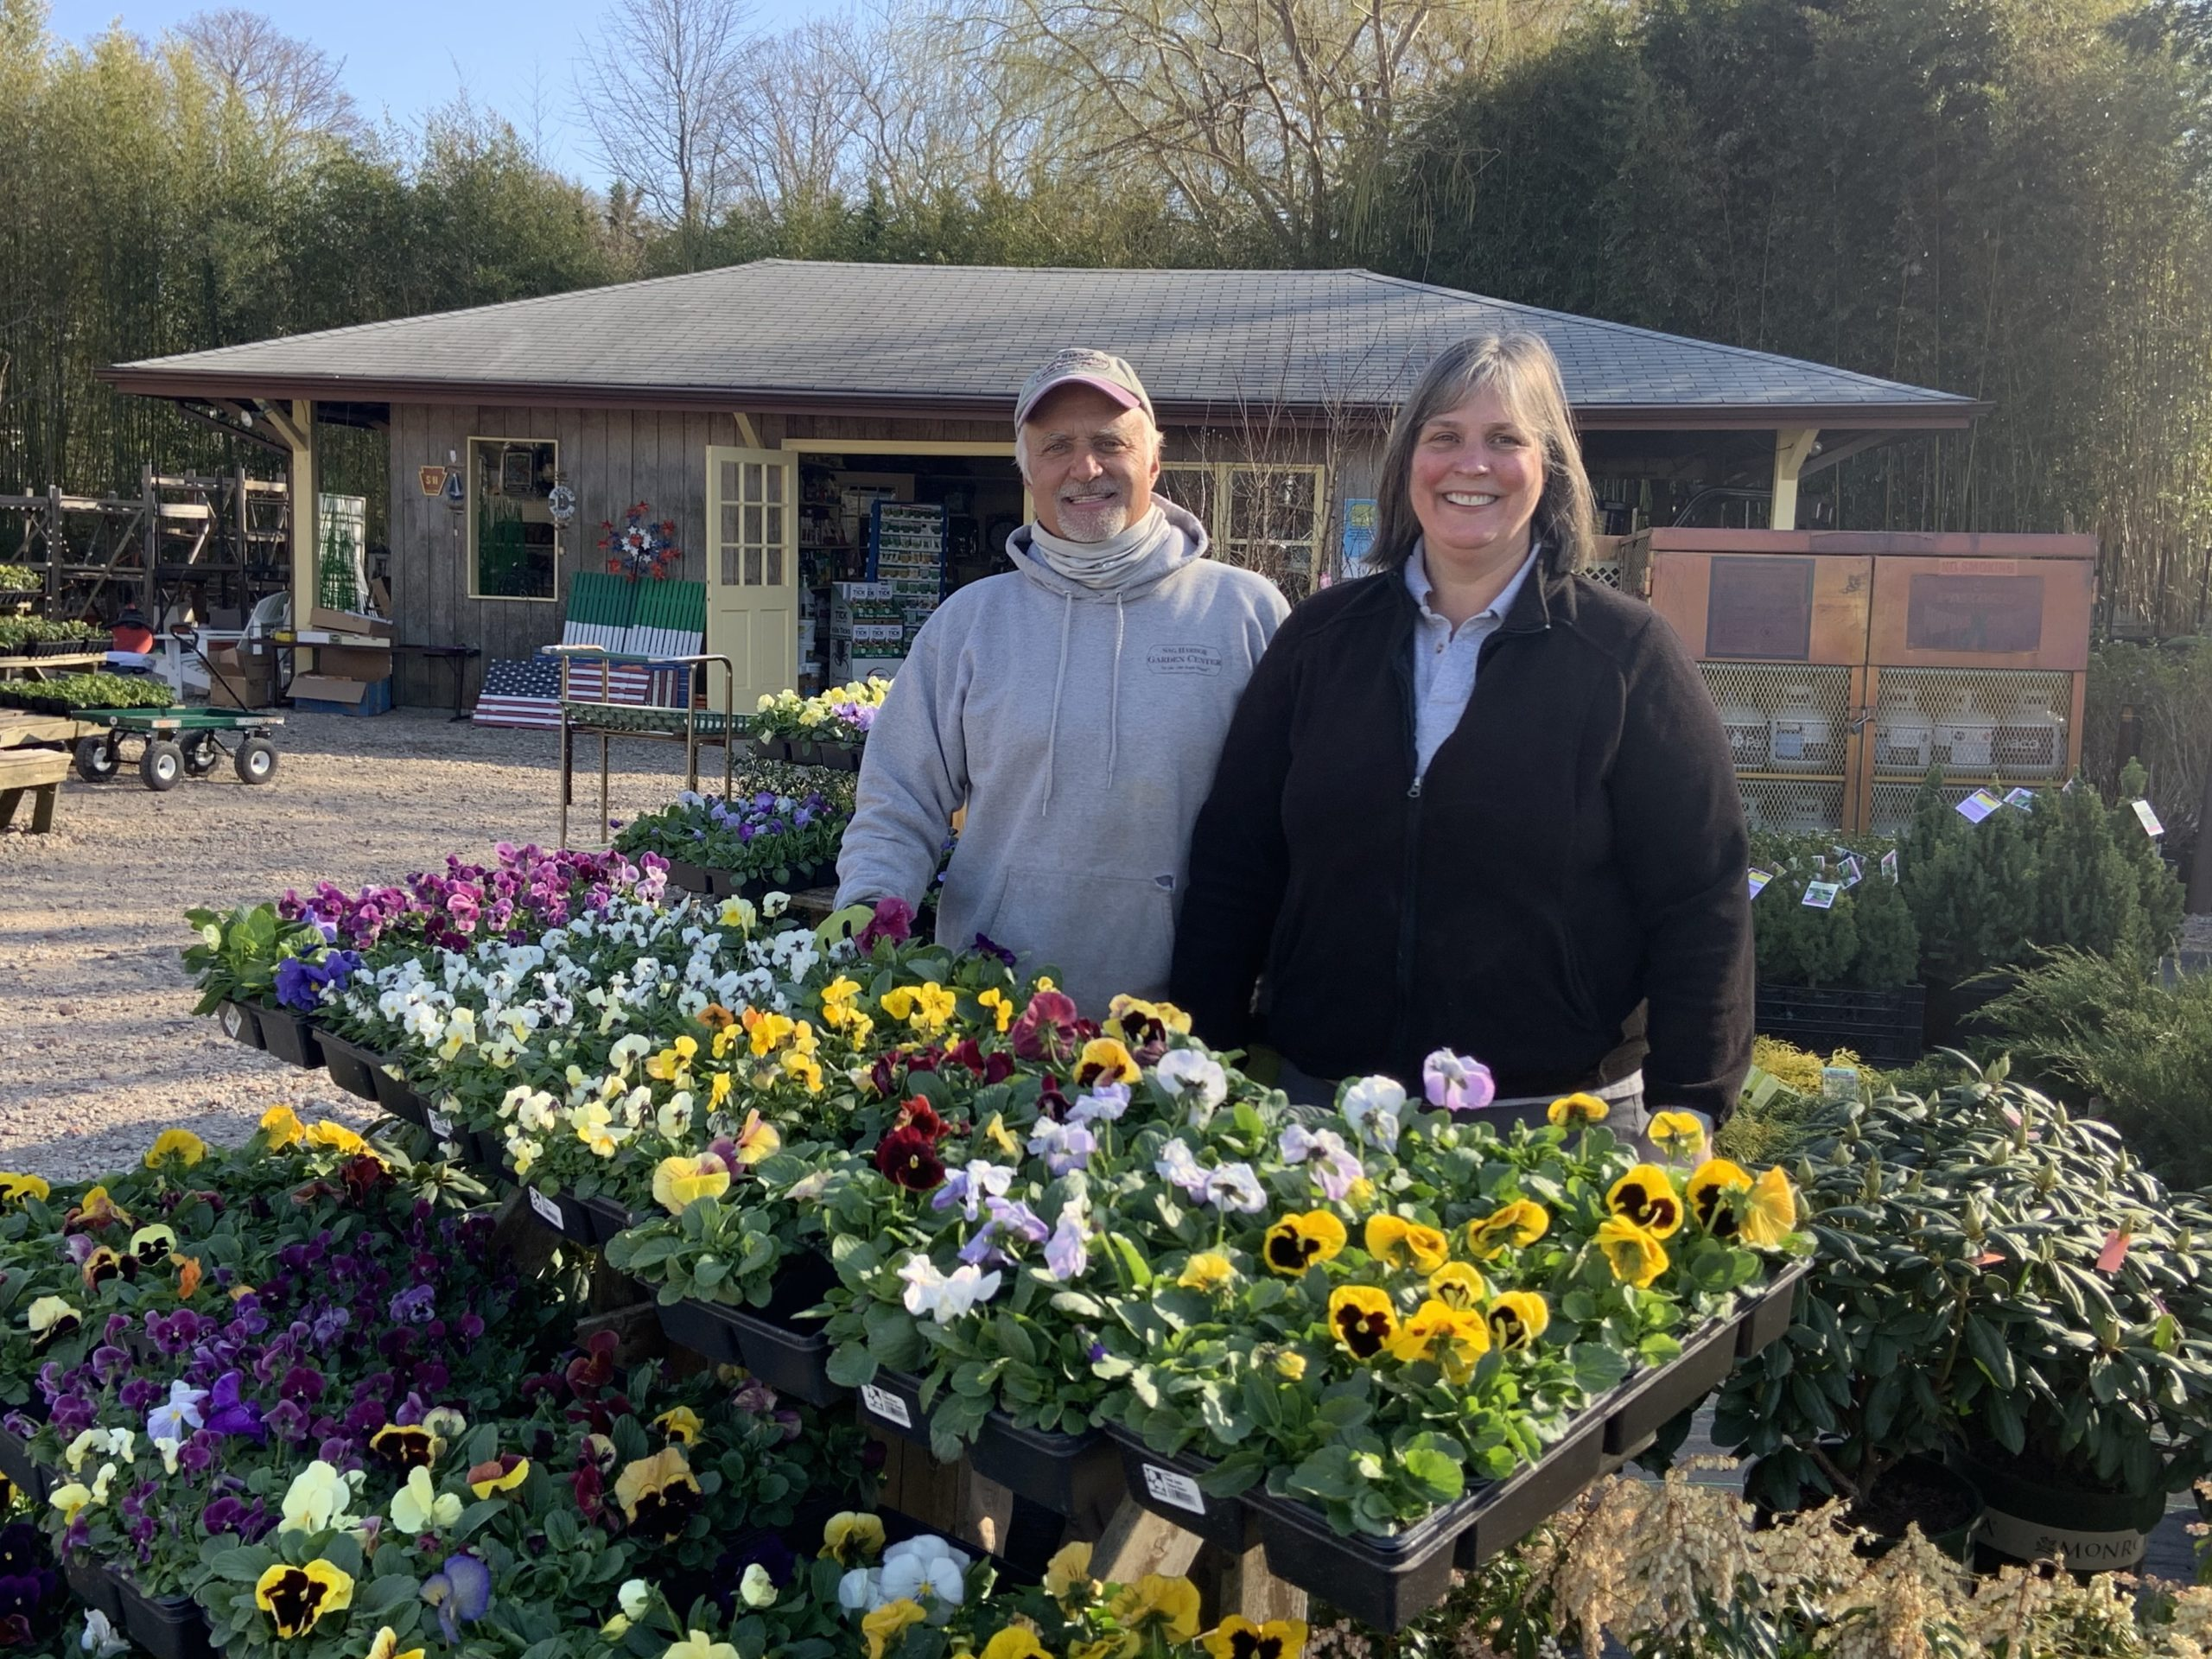 Phil and Diane Bucking are celebrating their 25th year as the owners of the Sag Harbor Garden Center. STEPHEN J. KOTZ